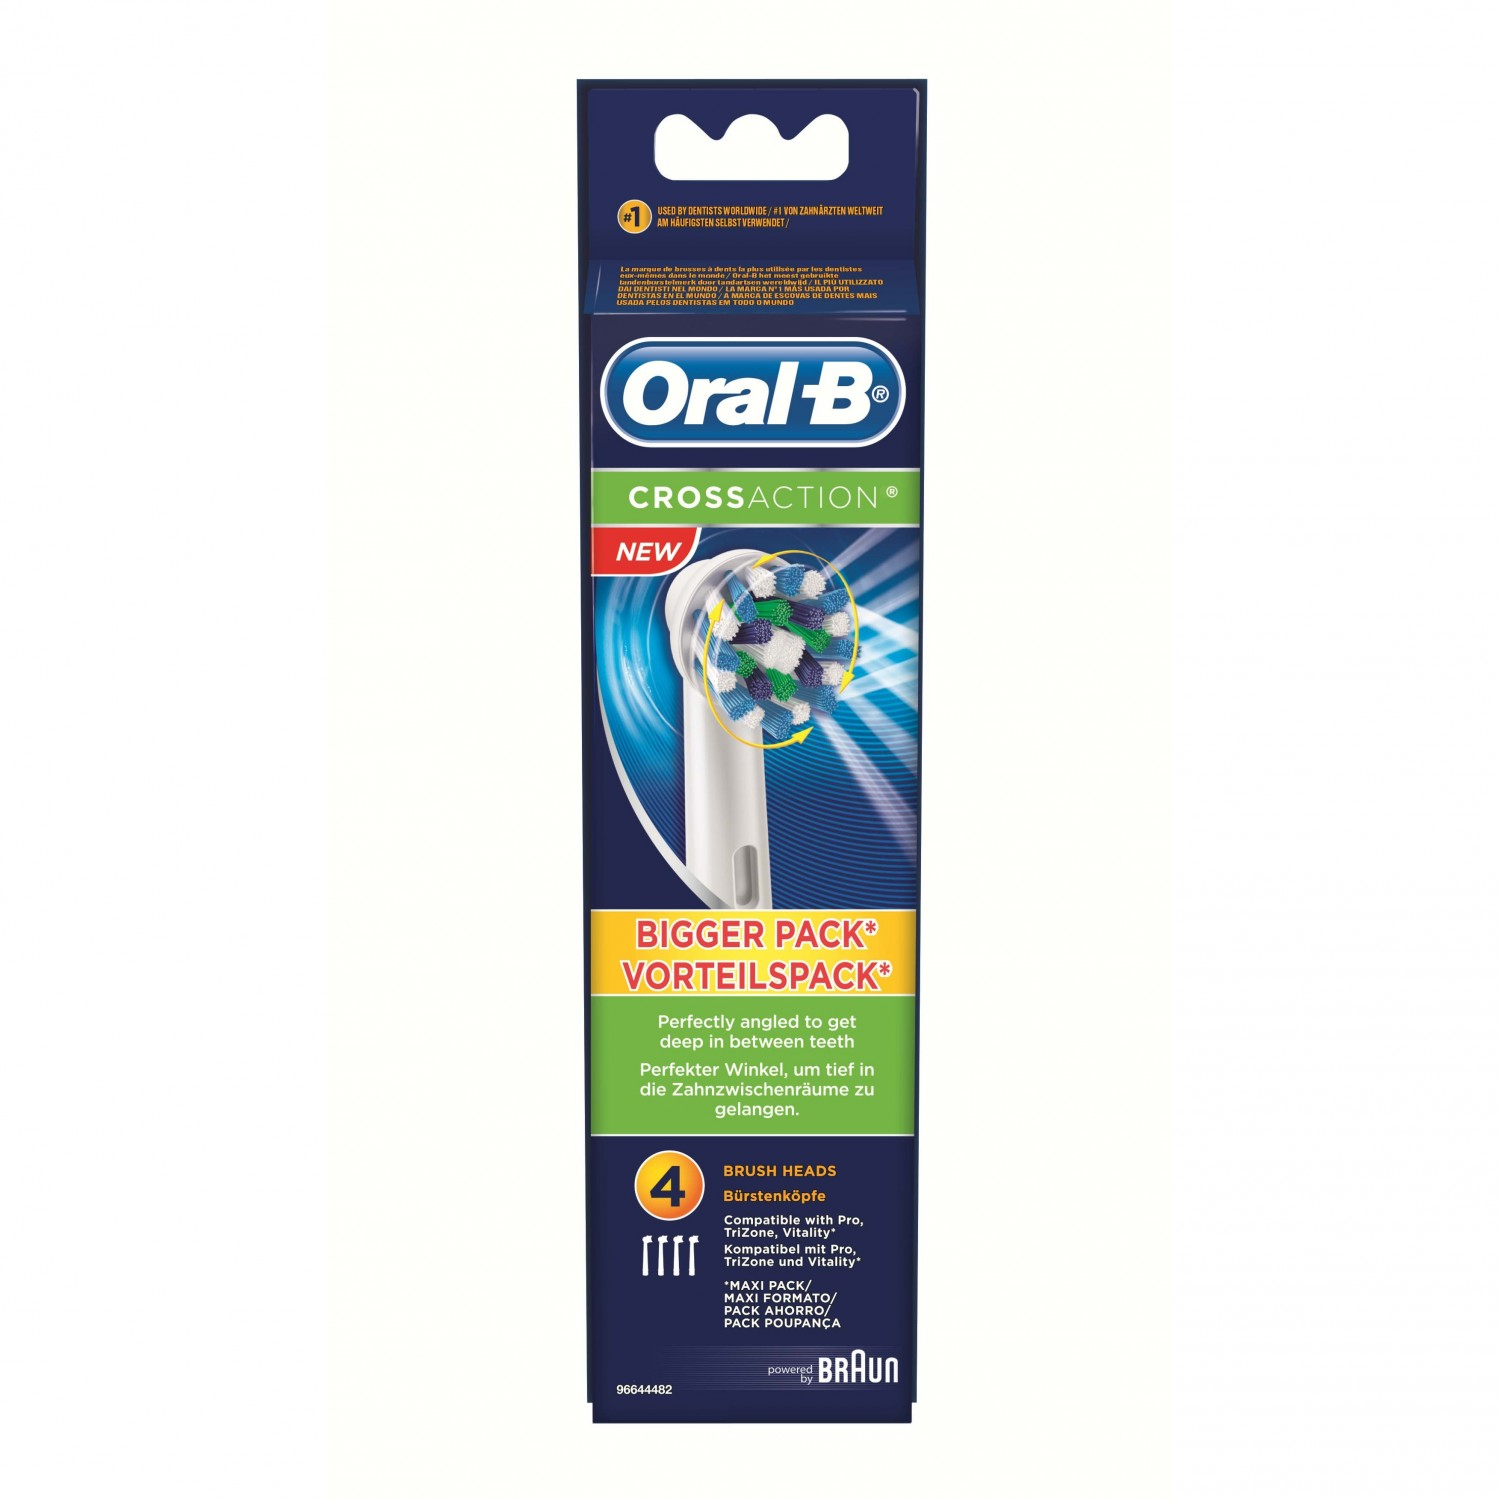 Oral B recambio cepillo dental electrico cross action por 4 unidades